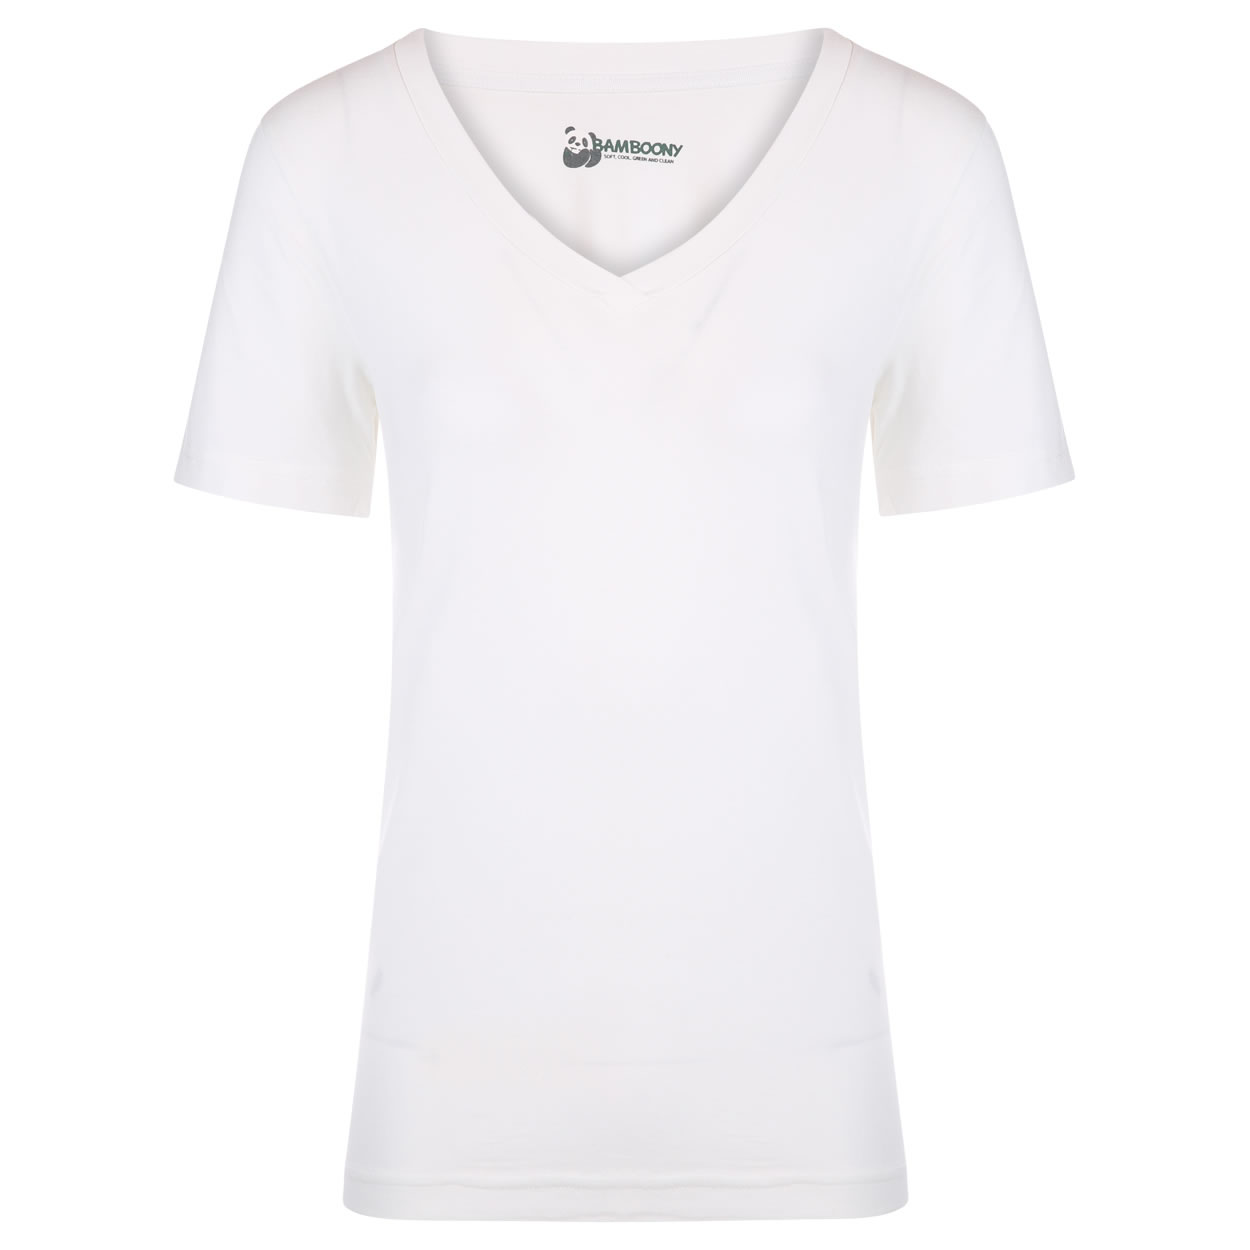 0a71f008 Luxe V-hals Dames Tshirt - wit